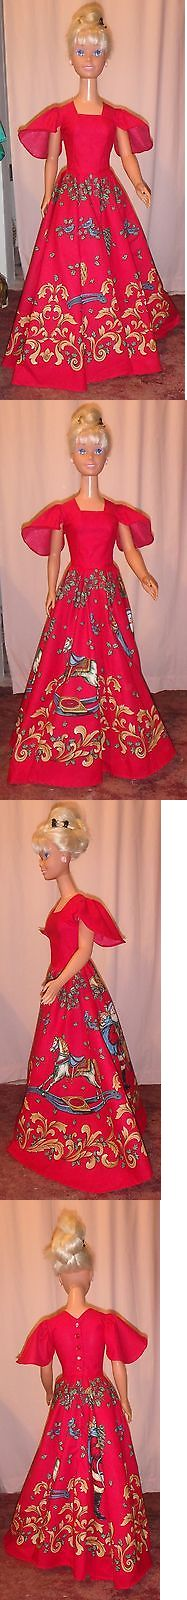 Custom Handmade Barbie Clothing: Red And Gold Christmas Gown With Sleigh Rides For My Size Barbie Myhx03 -> BUY IT NOW ONLY: $67.65 on eBay!